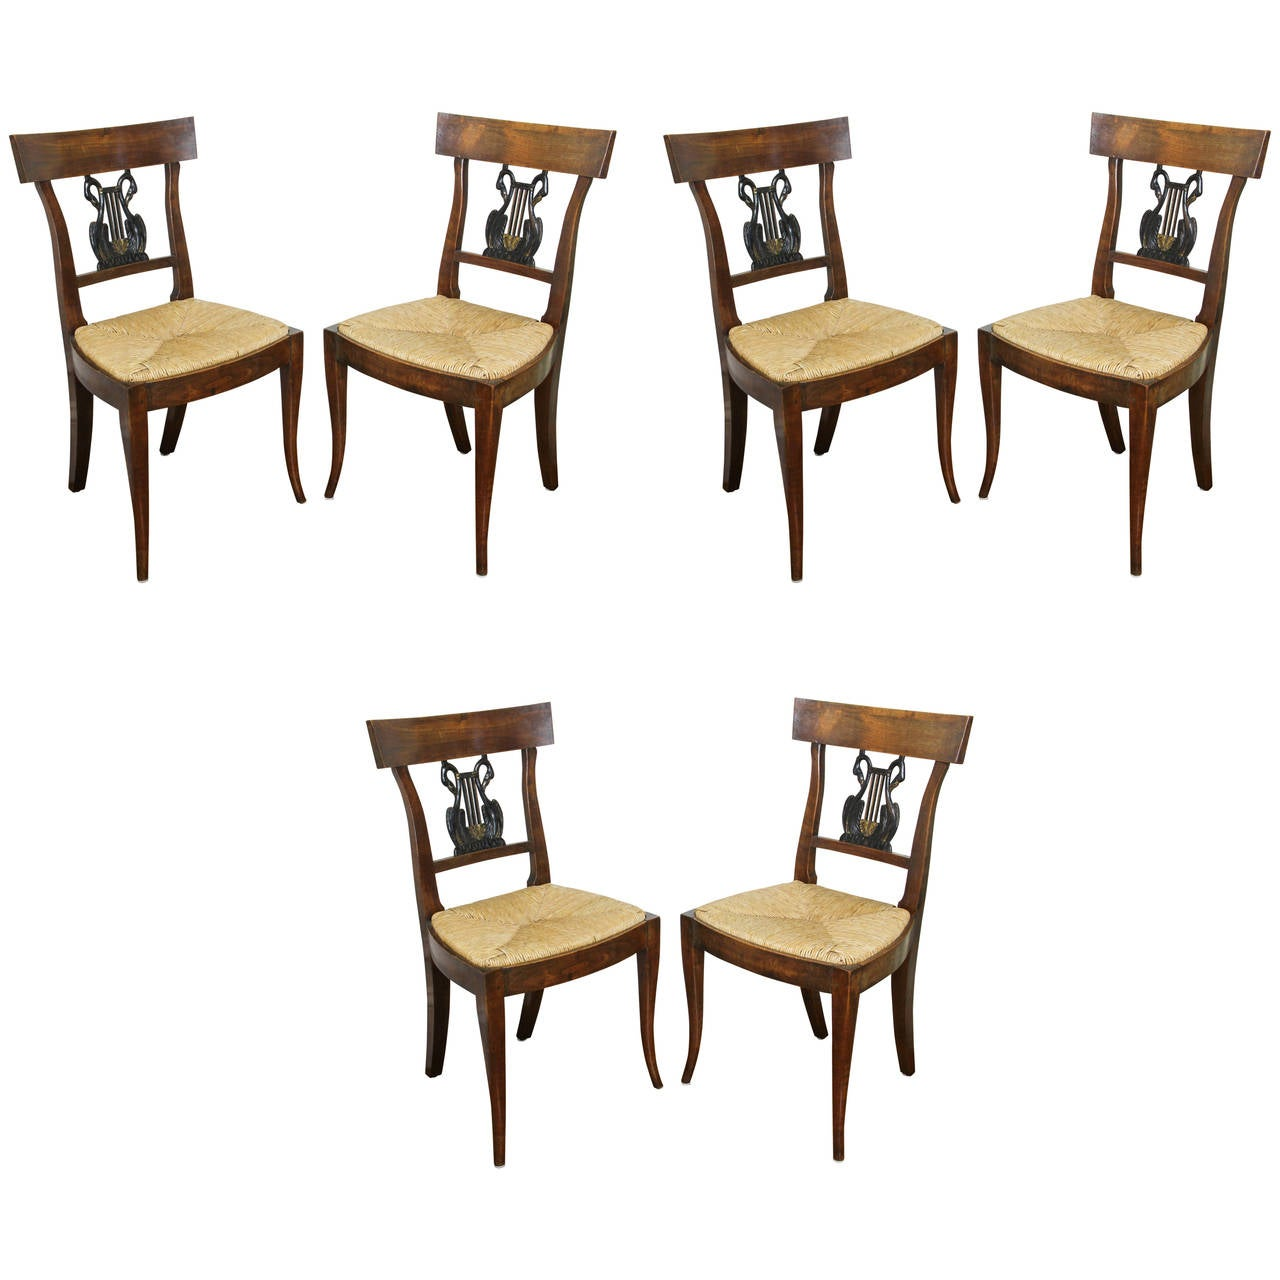 Set of Six Italian Neoclassic Walnut and Ebonized Dining Chairs